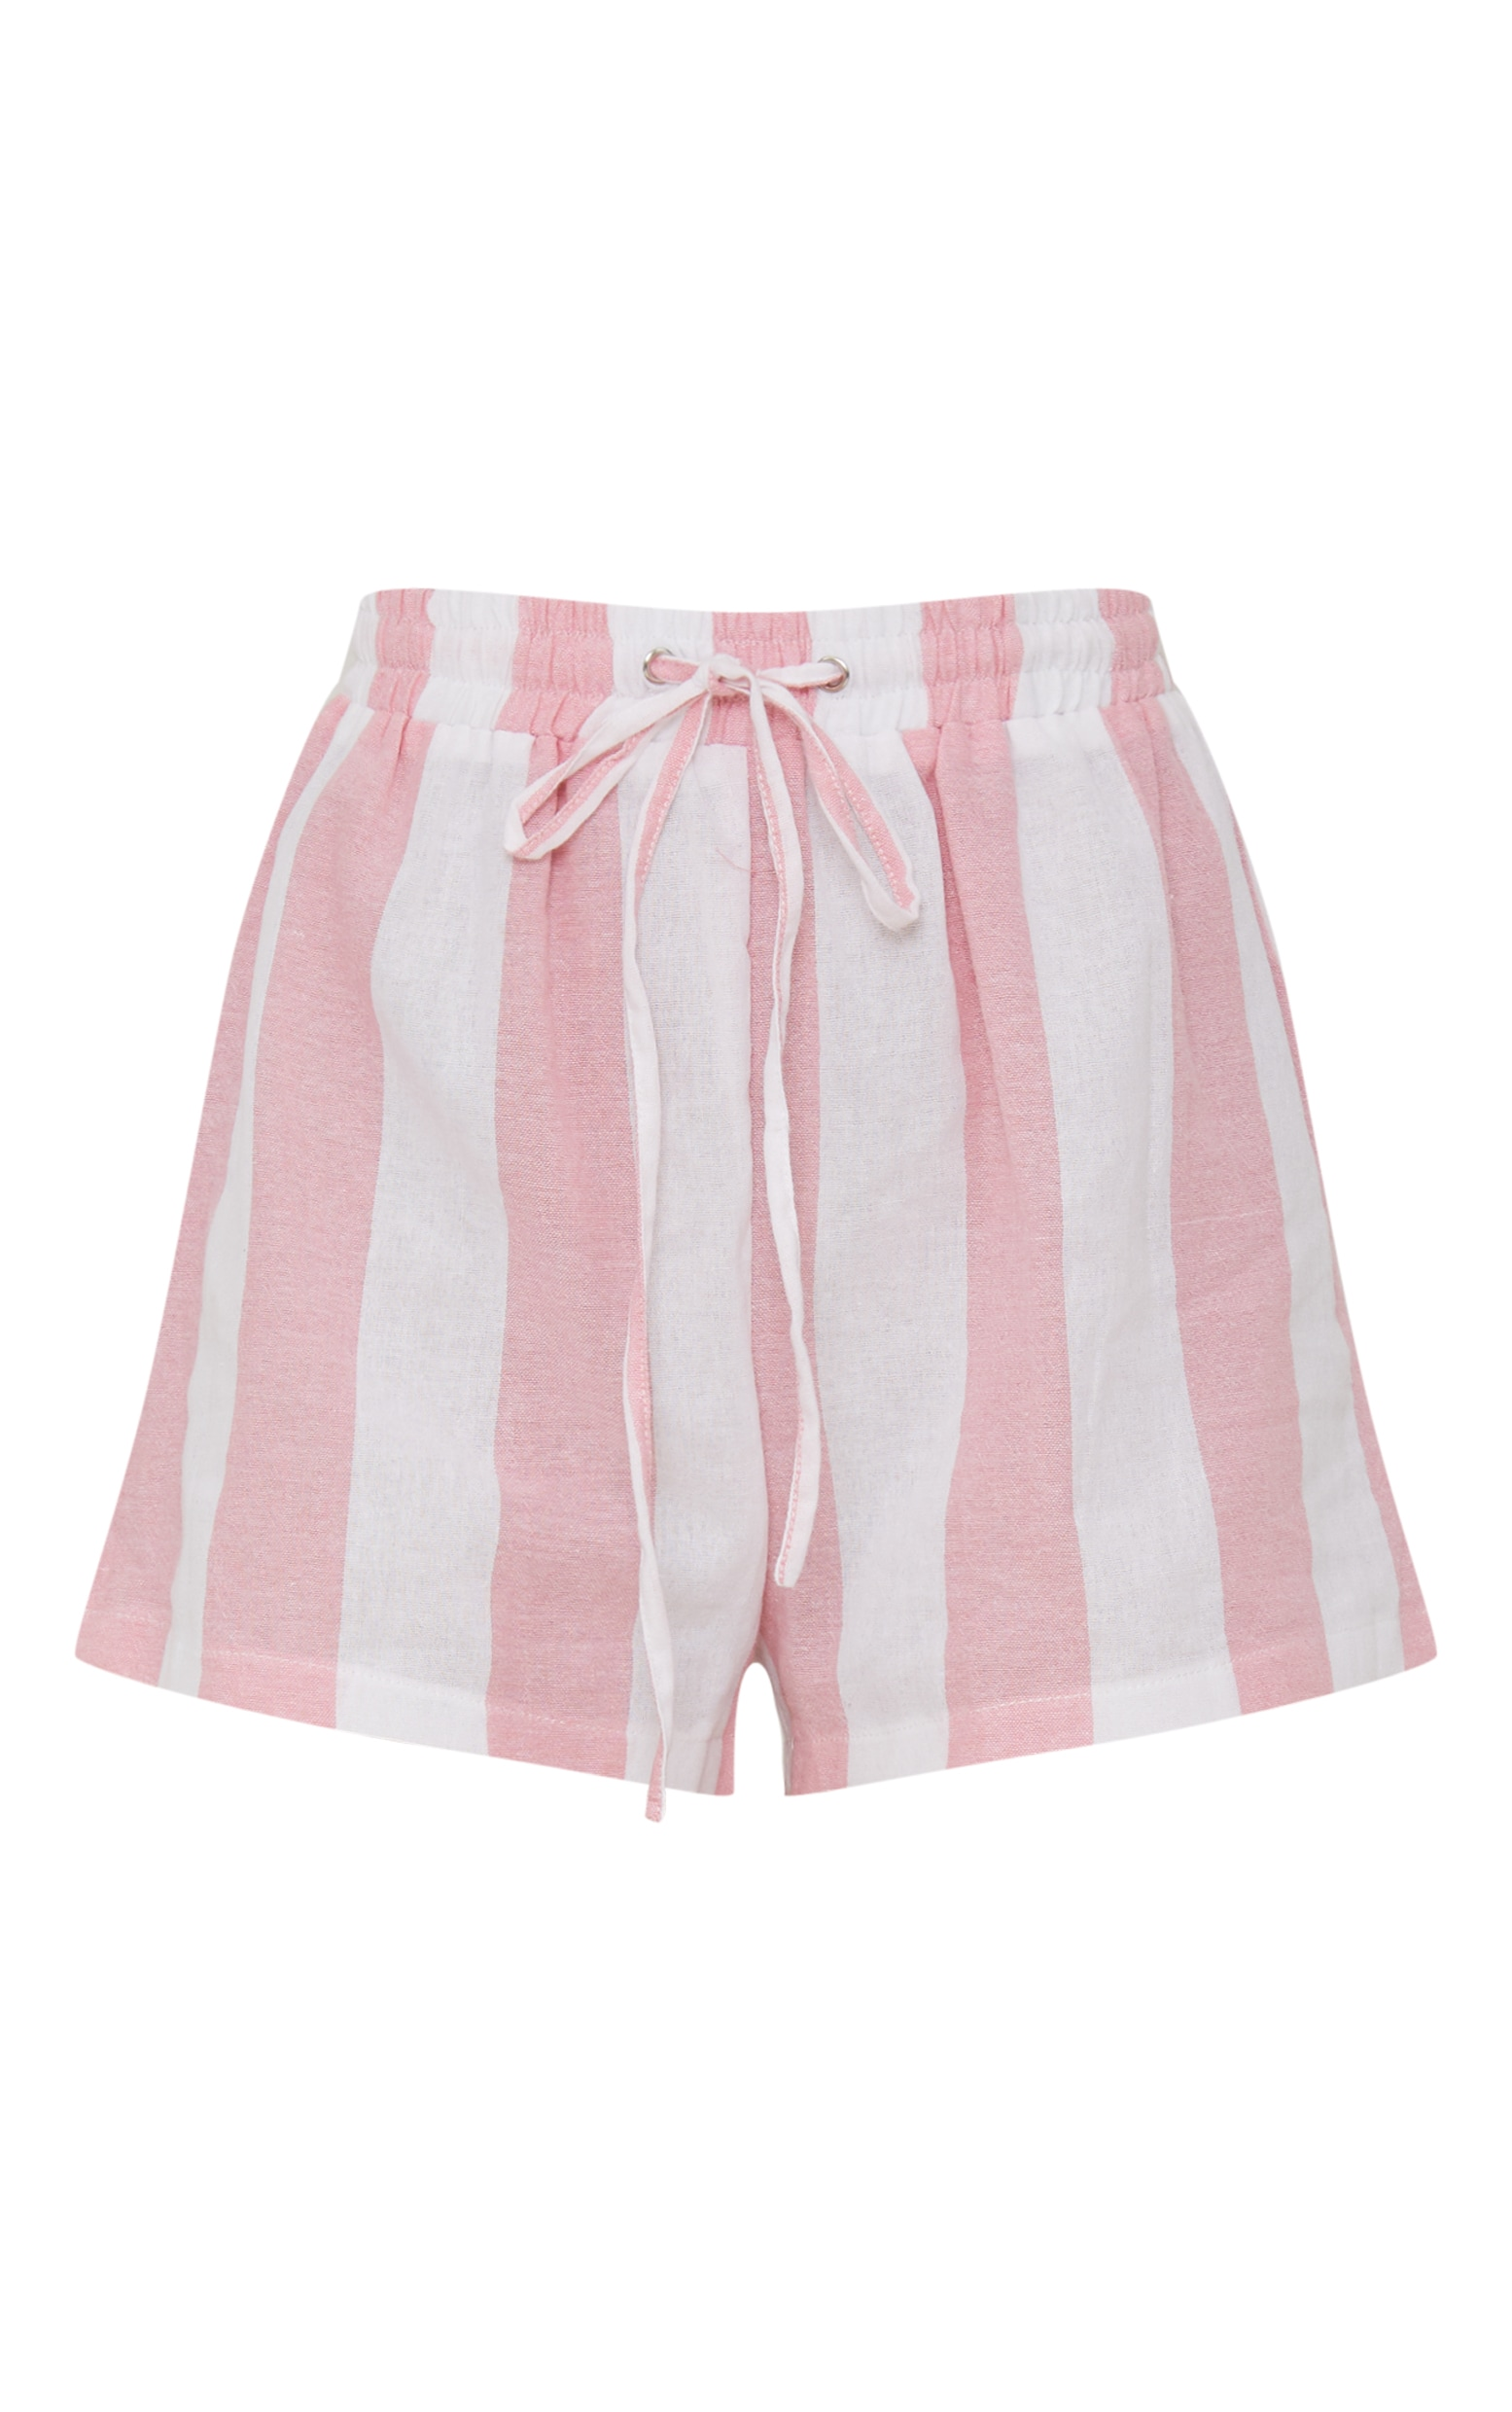 Pink Cotton Candy Stripe Shorts 3